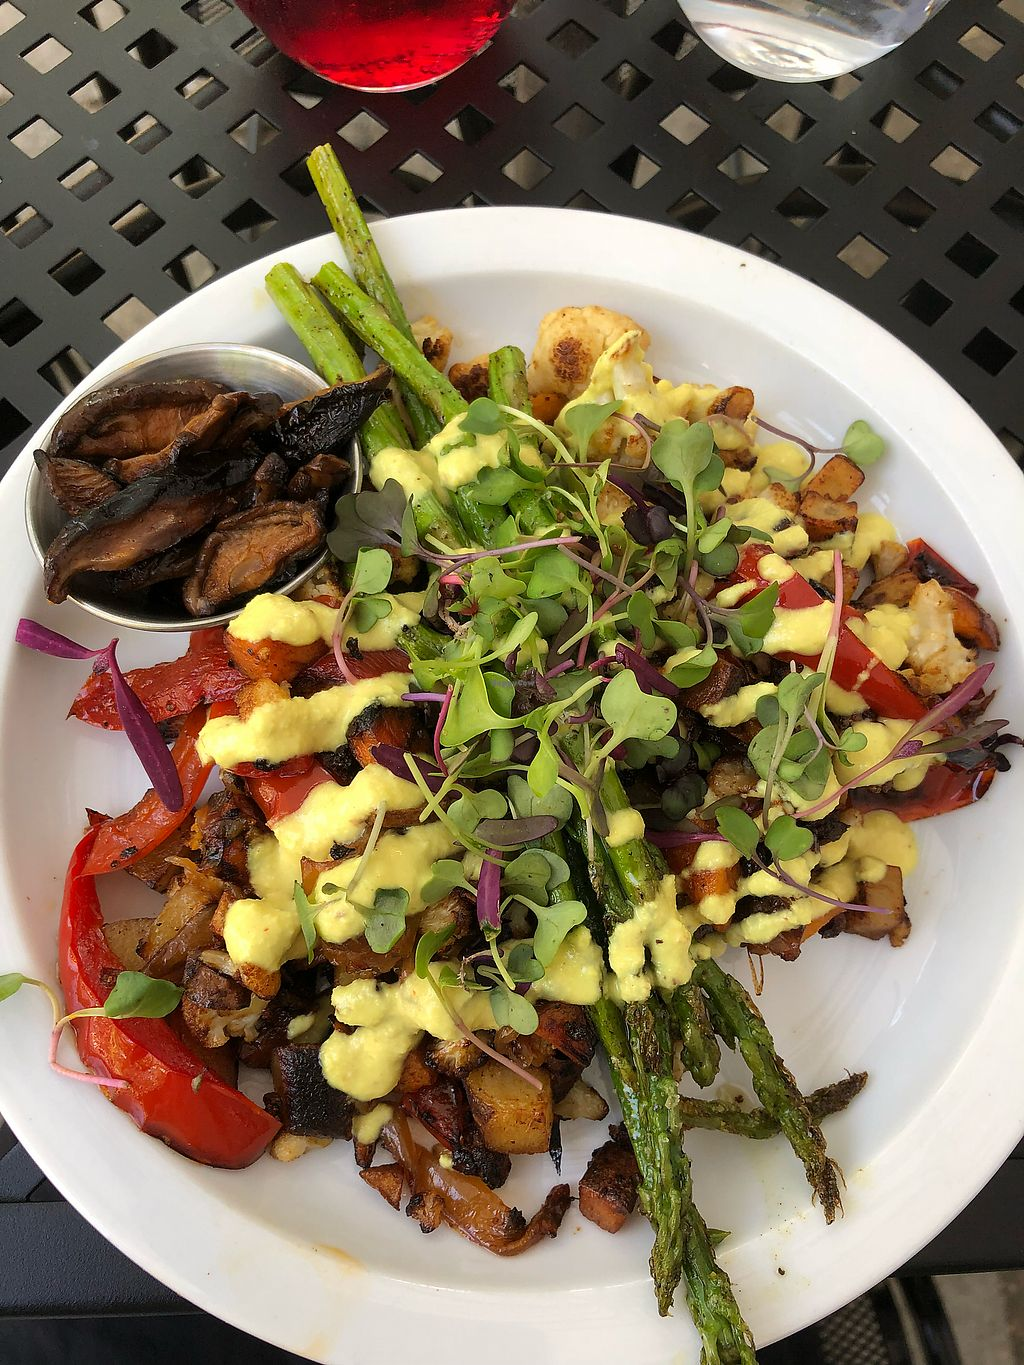 """Photo of Fox & Fig  by <a href=""""/members/profile/KerryElise"""">KerryElise</a> <br/>Breakfast hash with cashew hollandaise  <br/> April 12, 2018  - <a href='/contact/abuse/image/106084/384668'>Report</a>"""